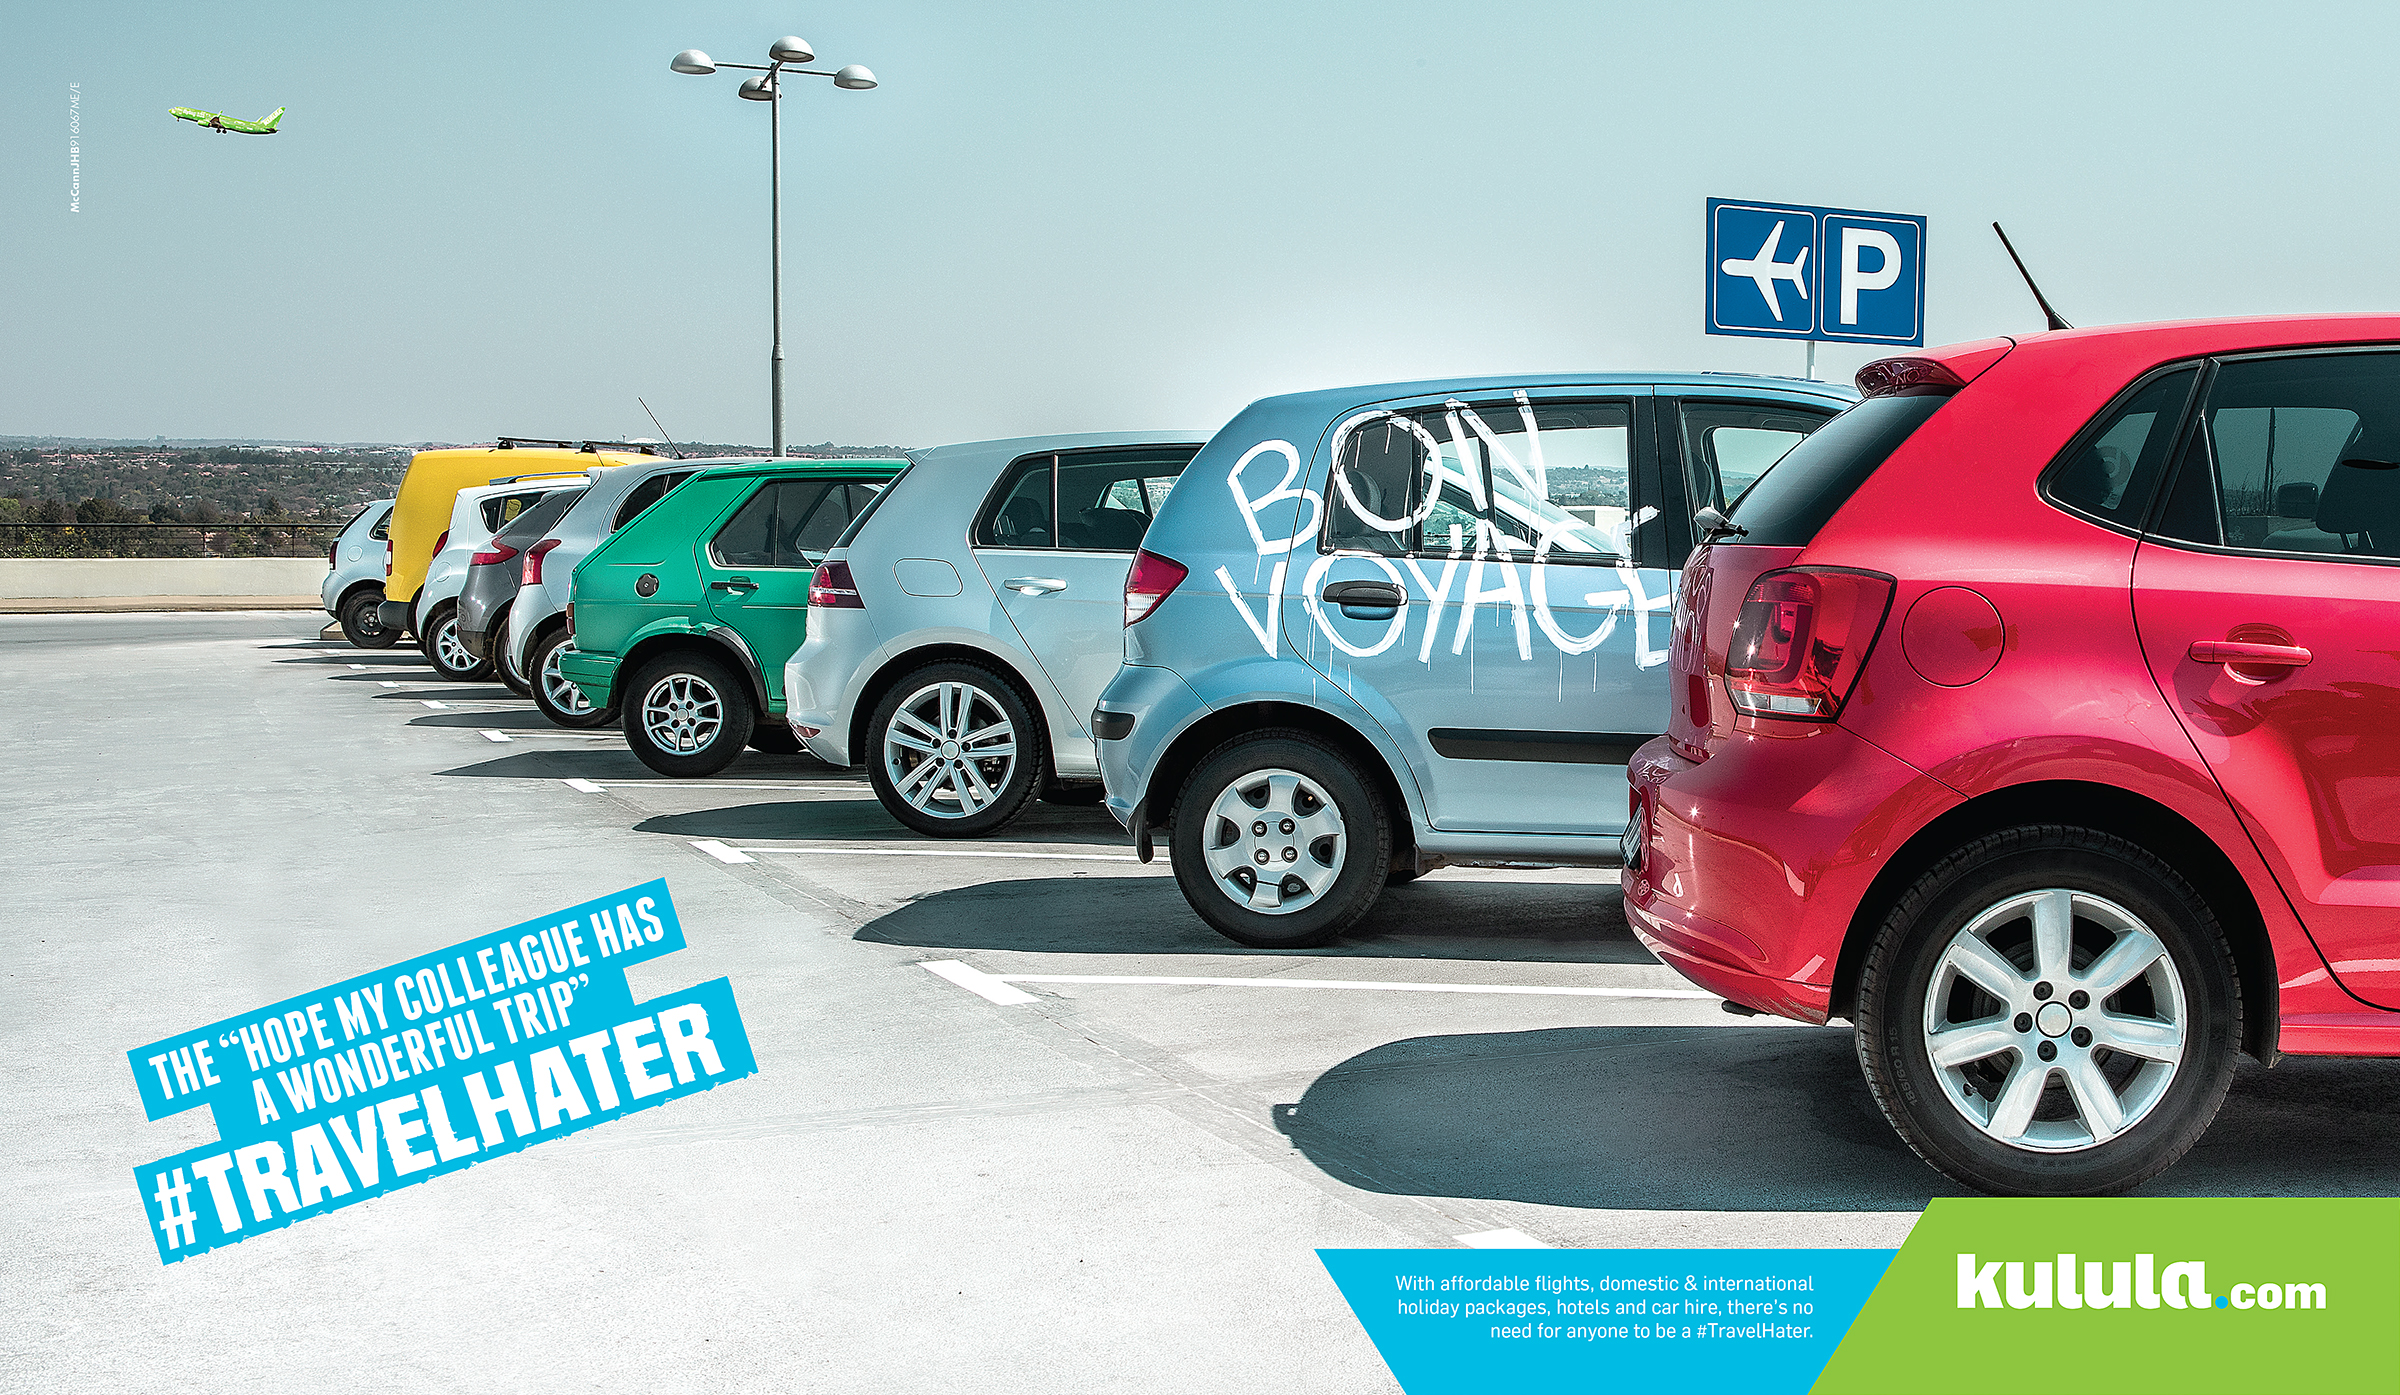 Kulula - Travel Haters Campaign